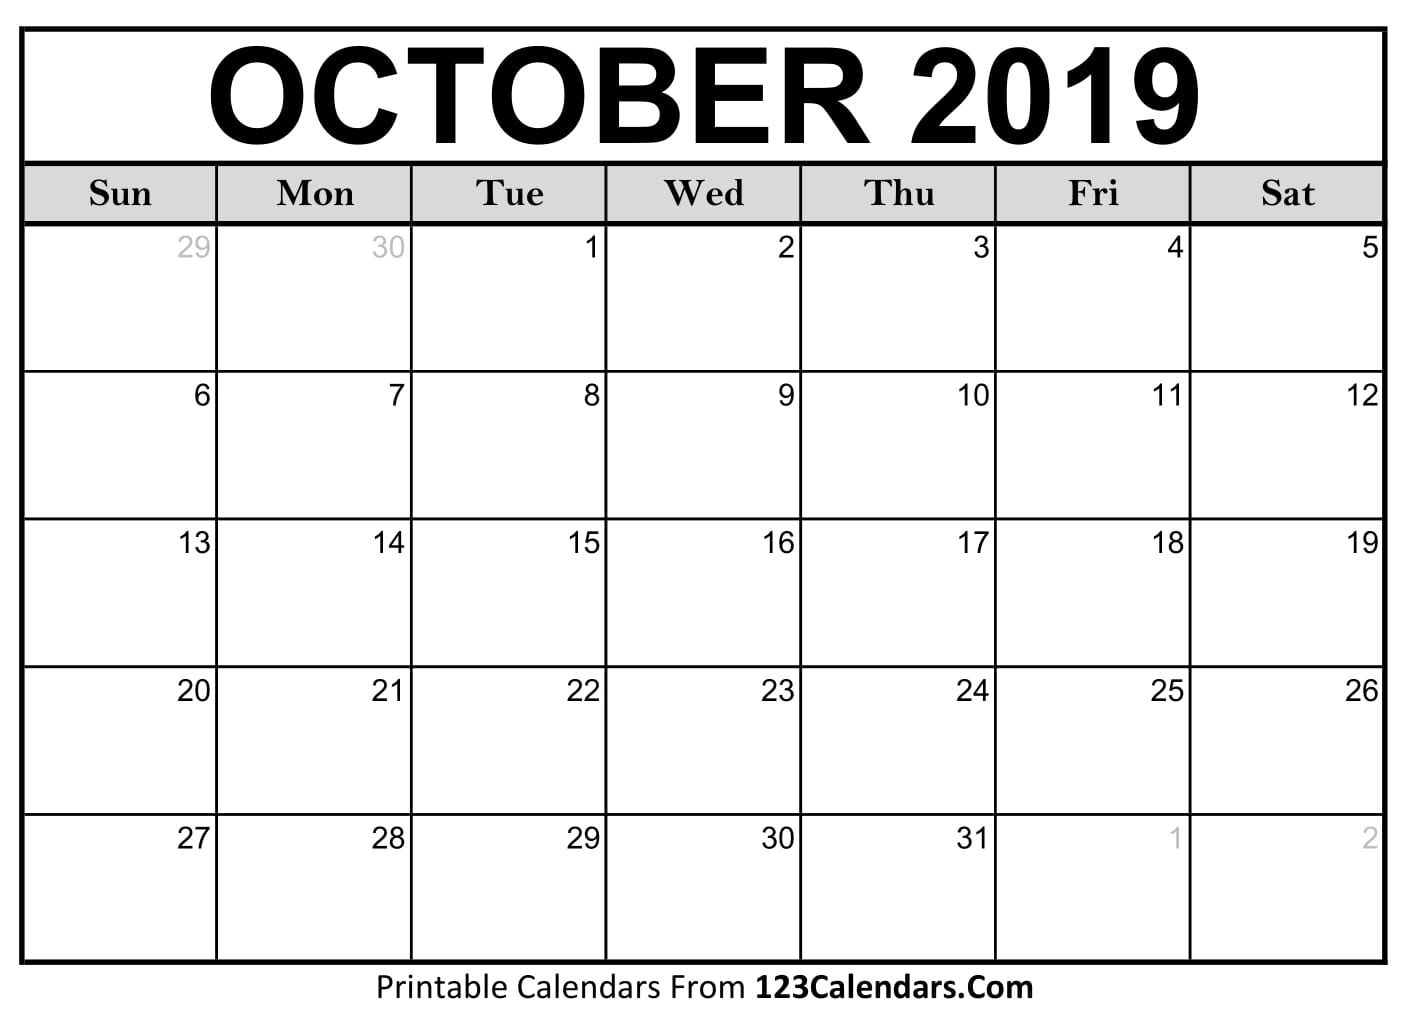 photo regarding Printable Calendar October named Oct 2019 Printable Calendar